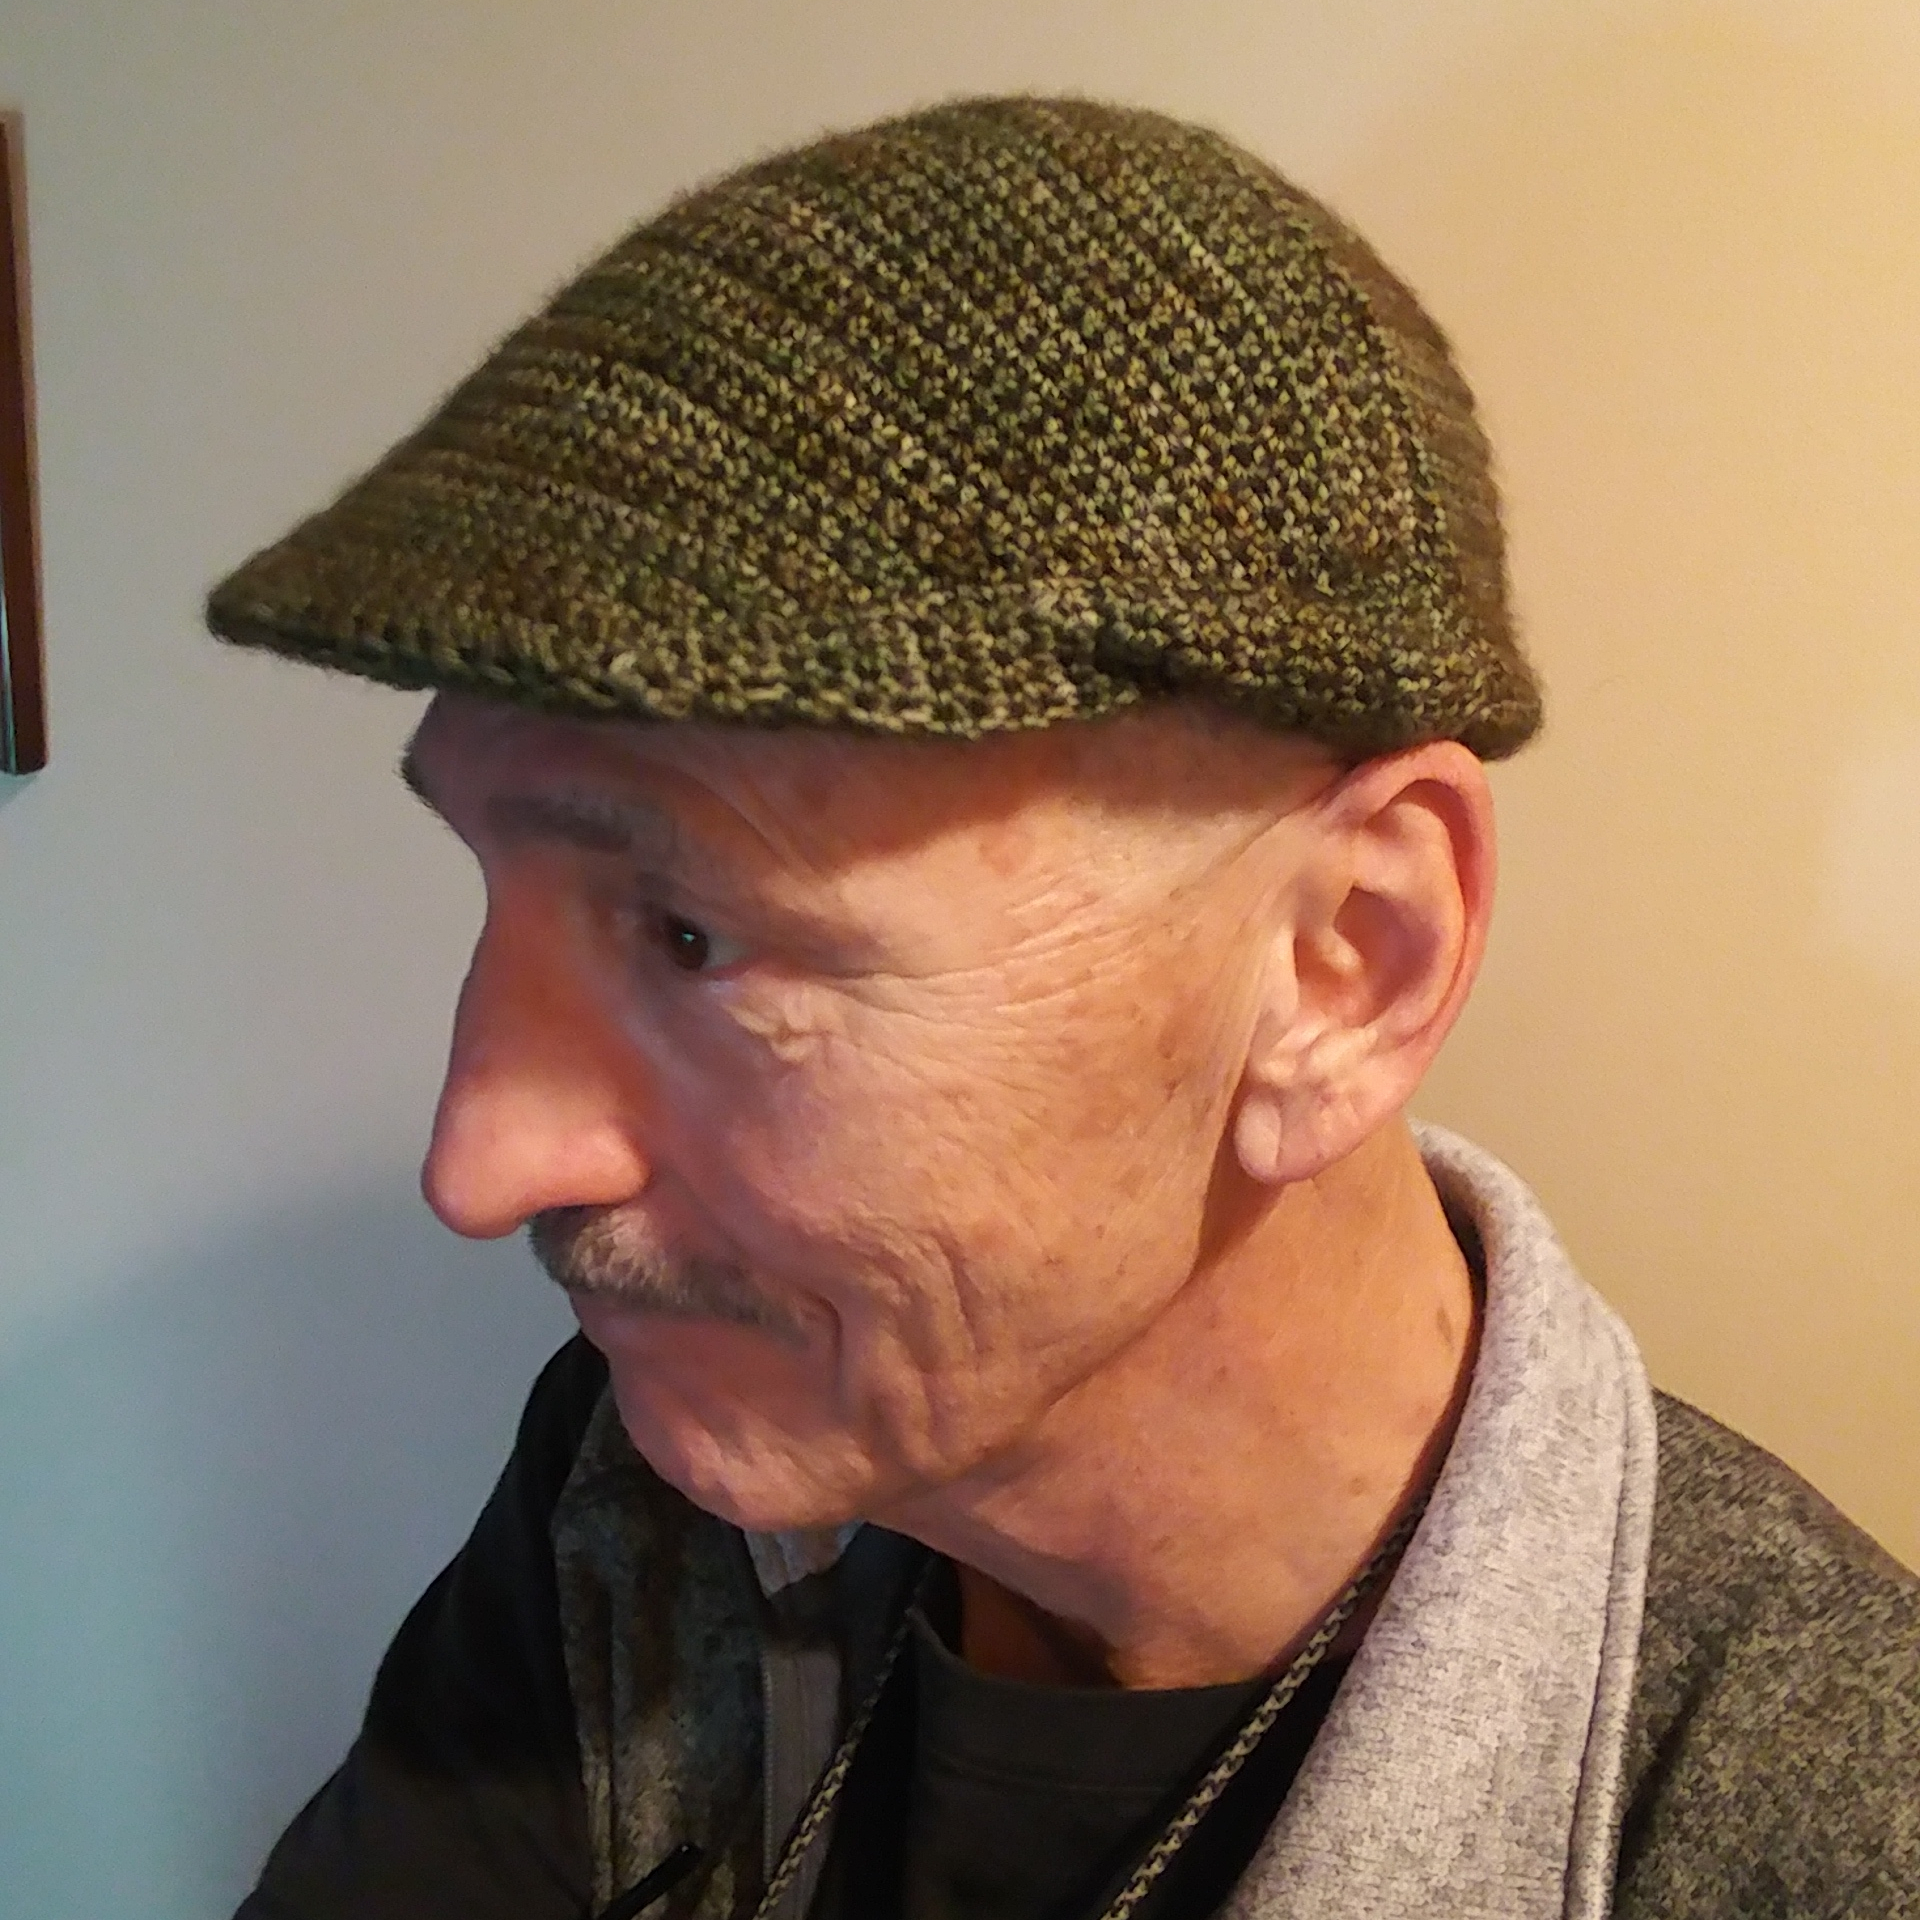 Dad in his crocheted cheese-cutter hat